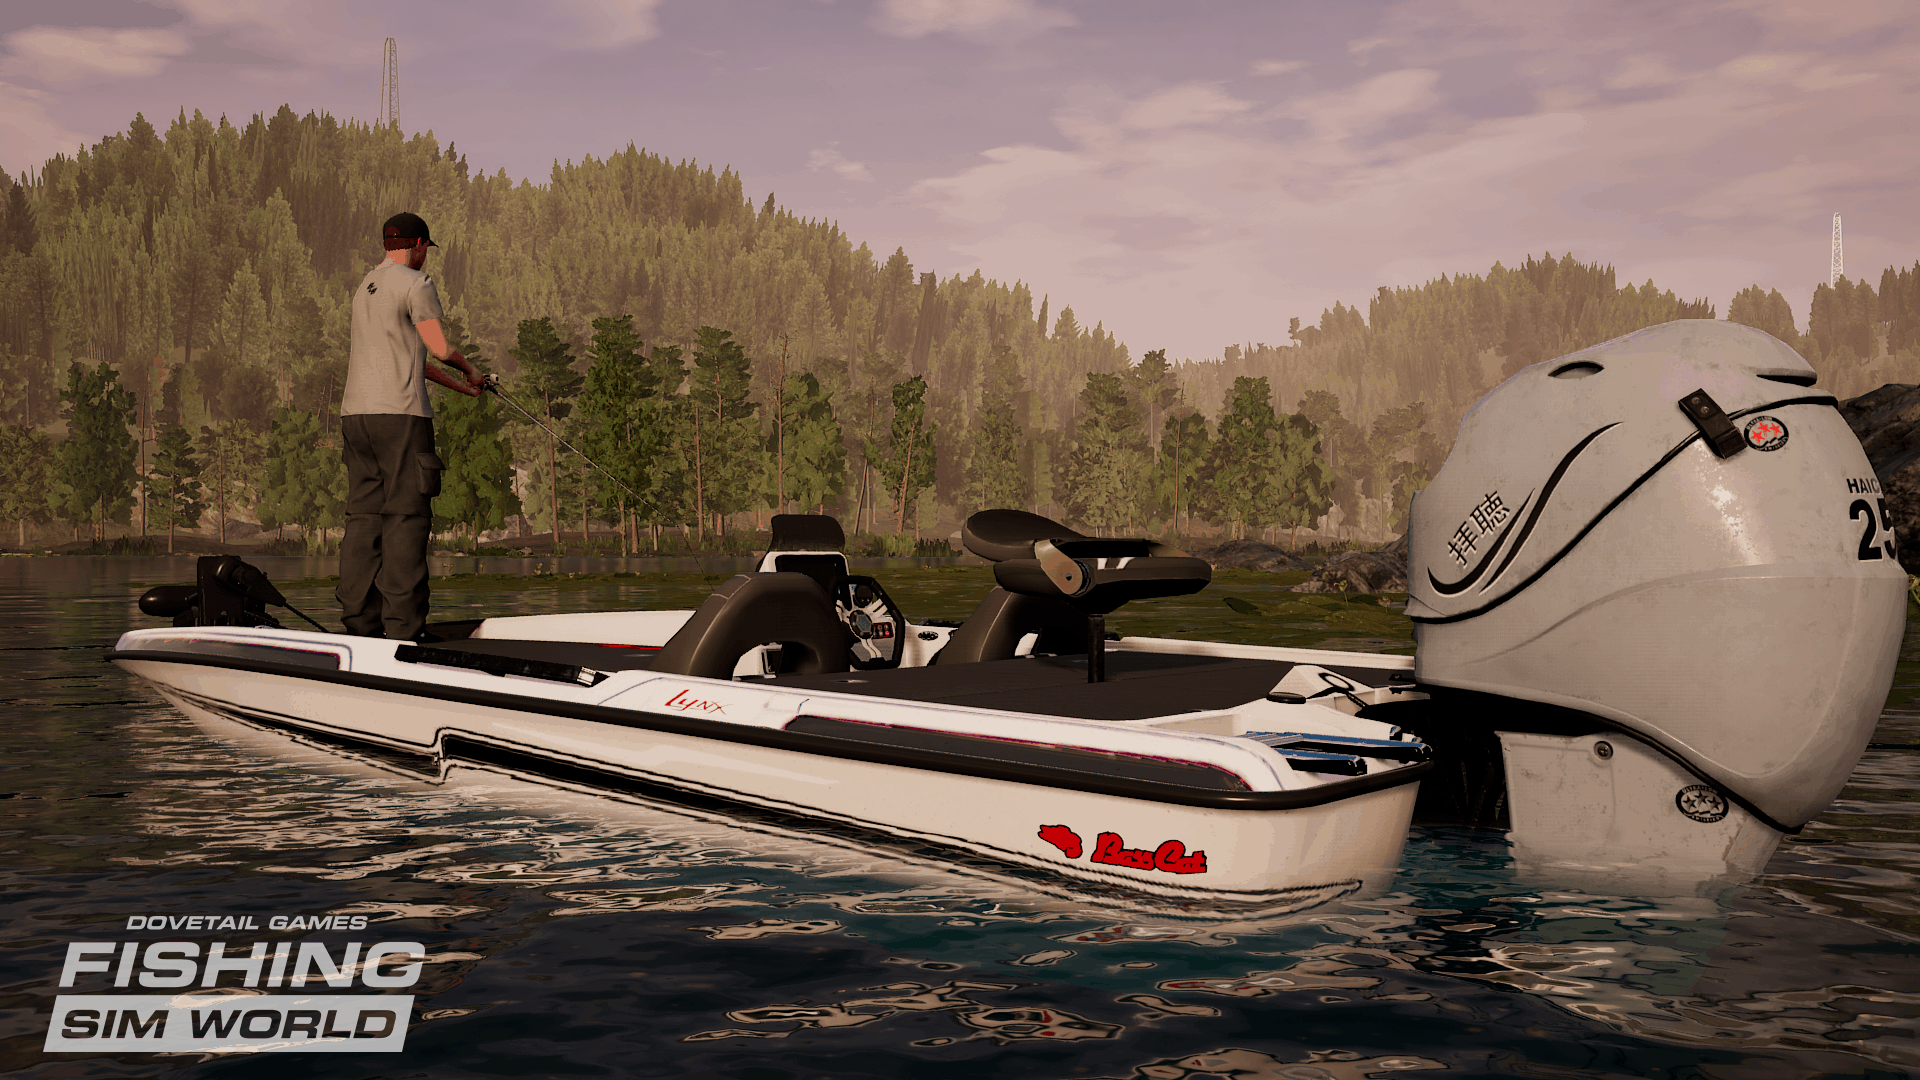 5---Basscat-Lynx-Boat---Fishing-Sim-World--Watermark-